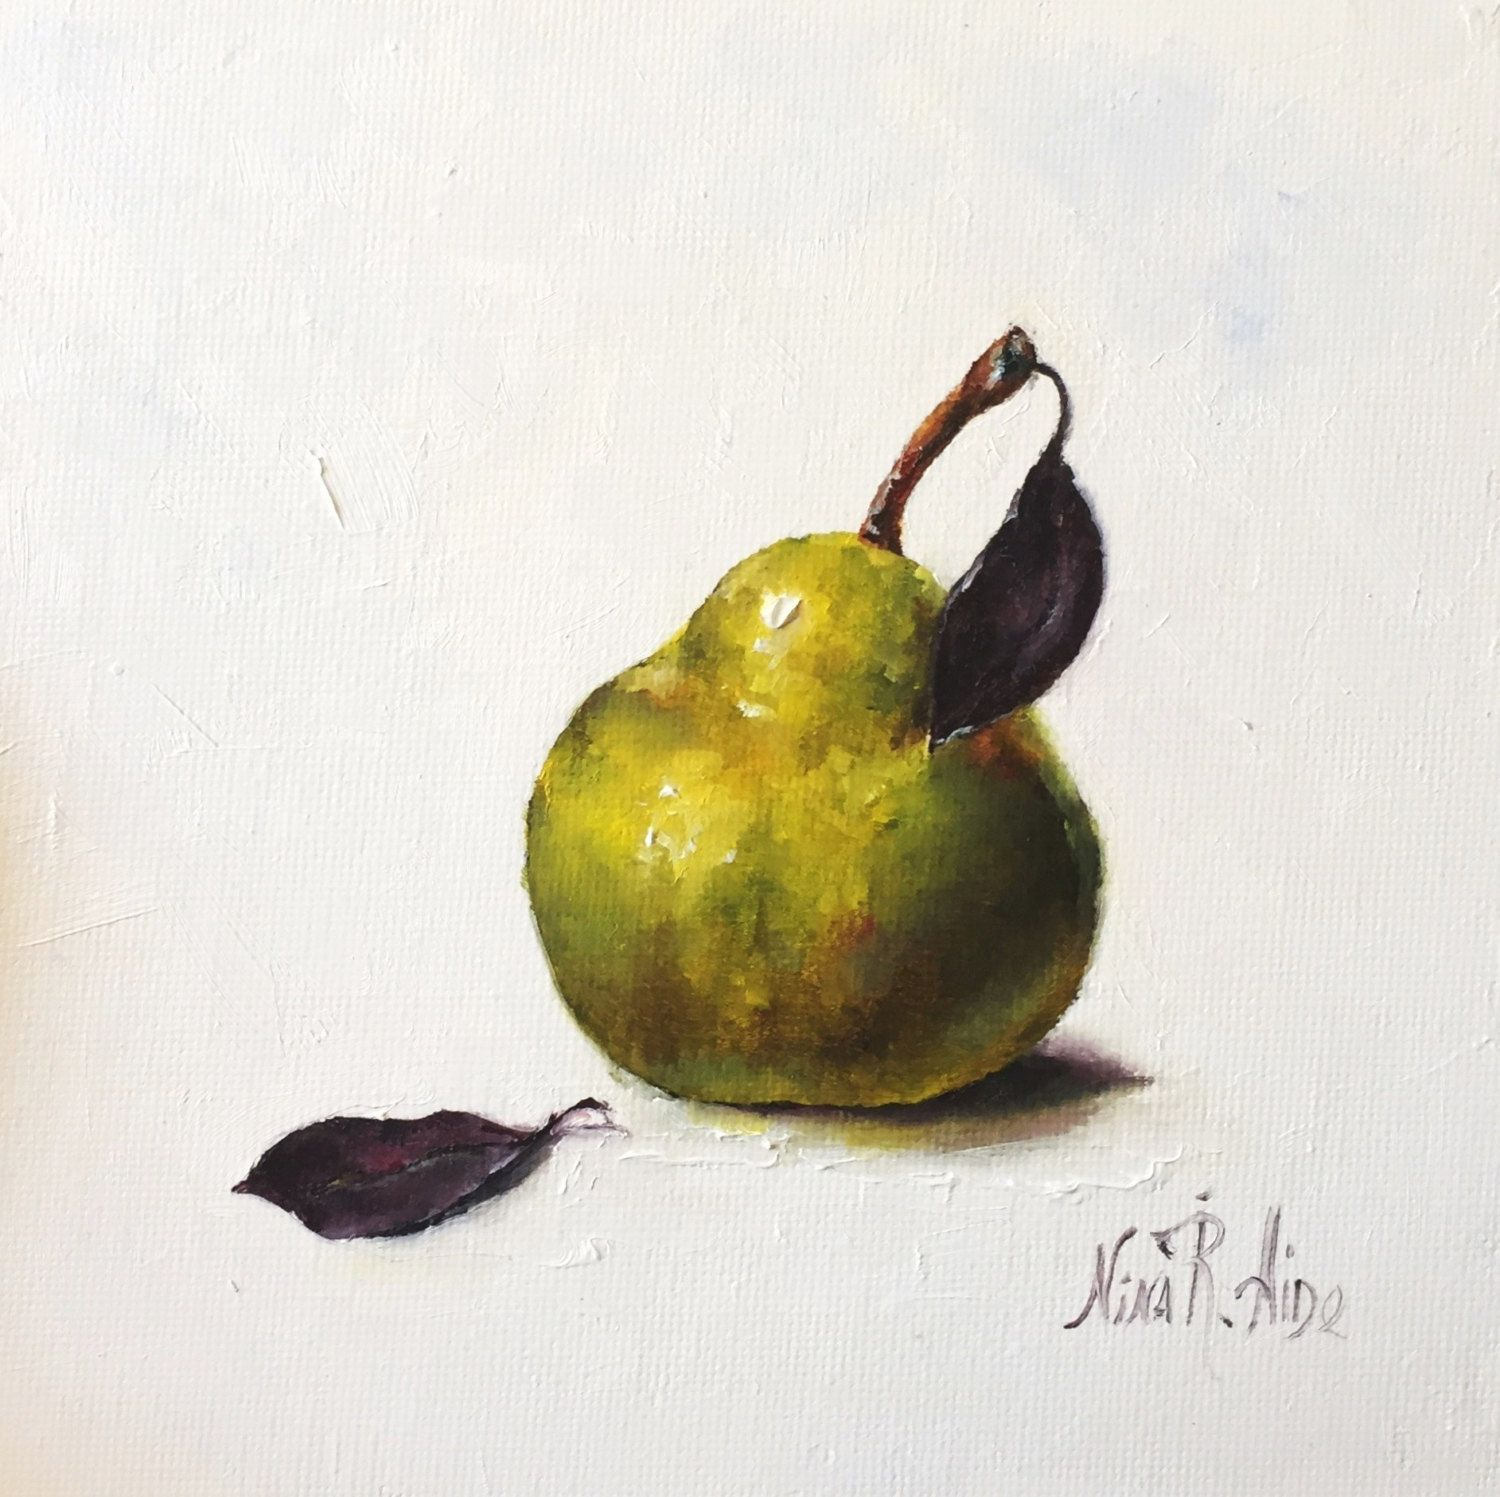 Pear Original Oil Painting Green Pear Still Life Kitchen Art Small Painting  Fruit Daily Painting Canvas By NinaRAideStudio On Etsy Painting Life